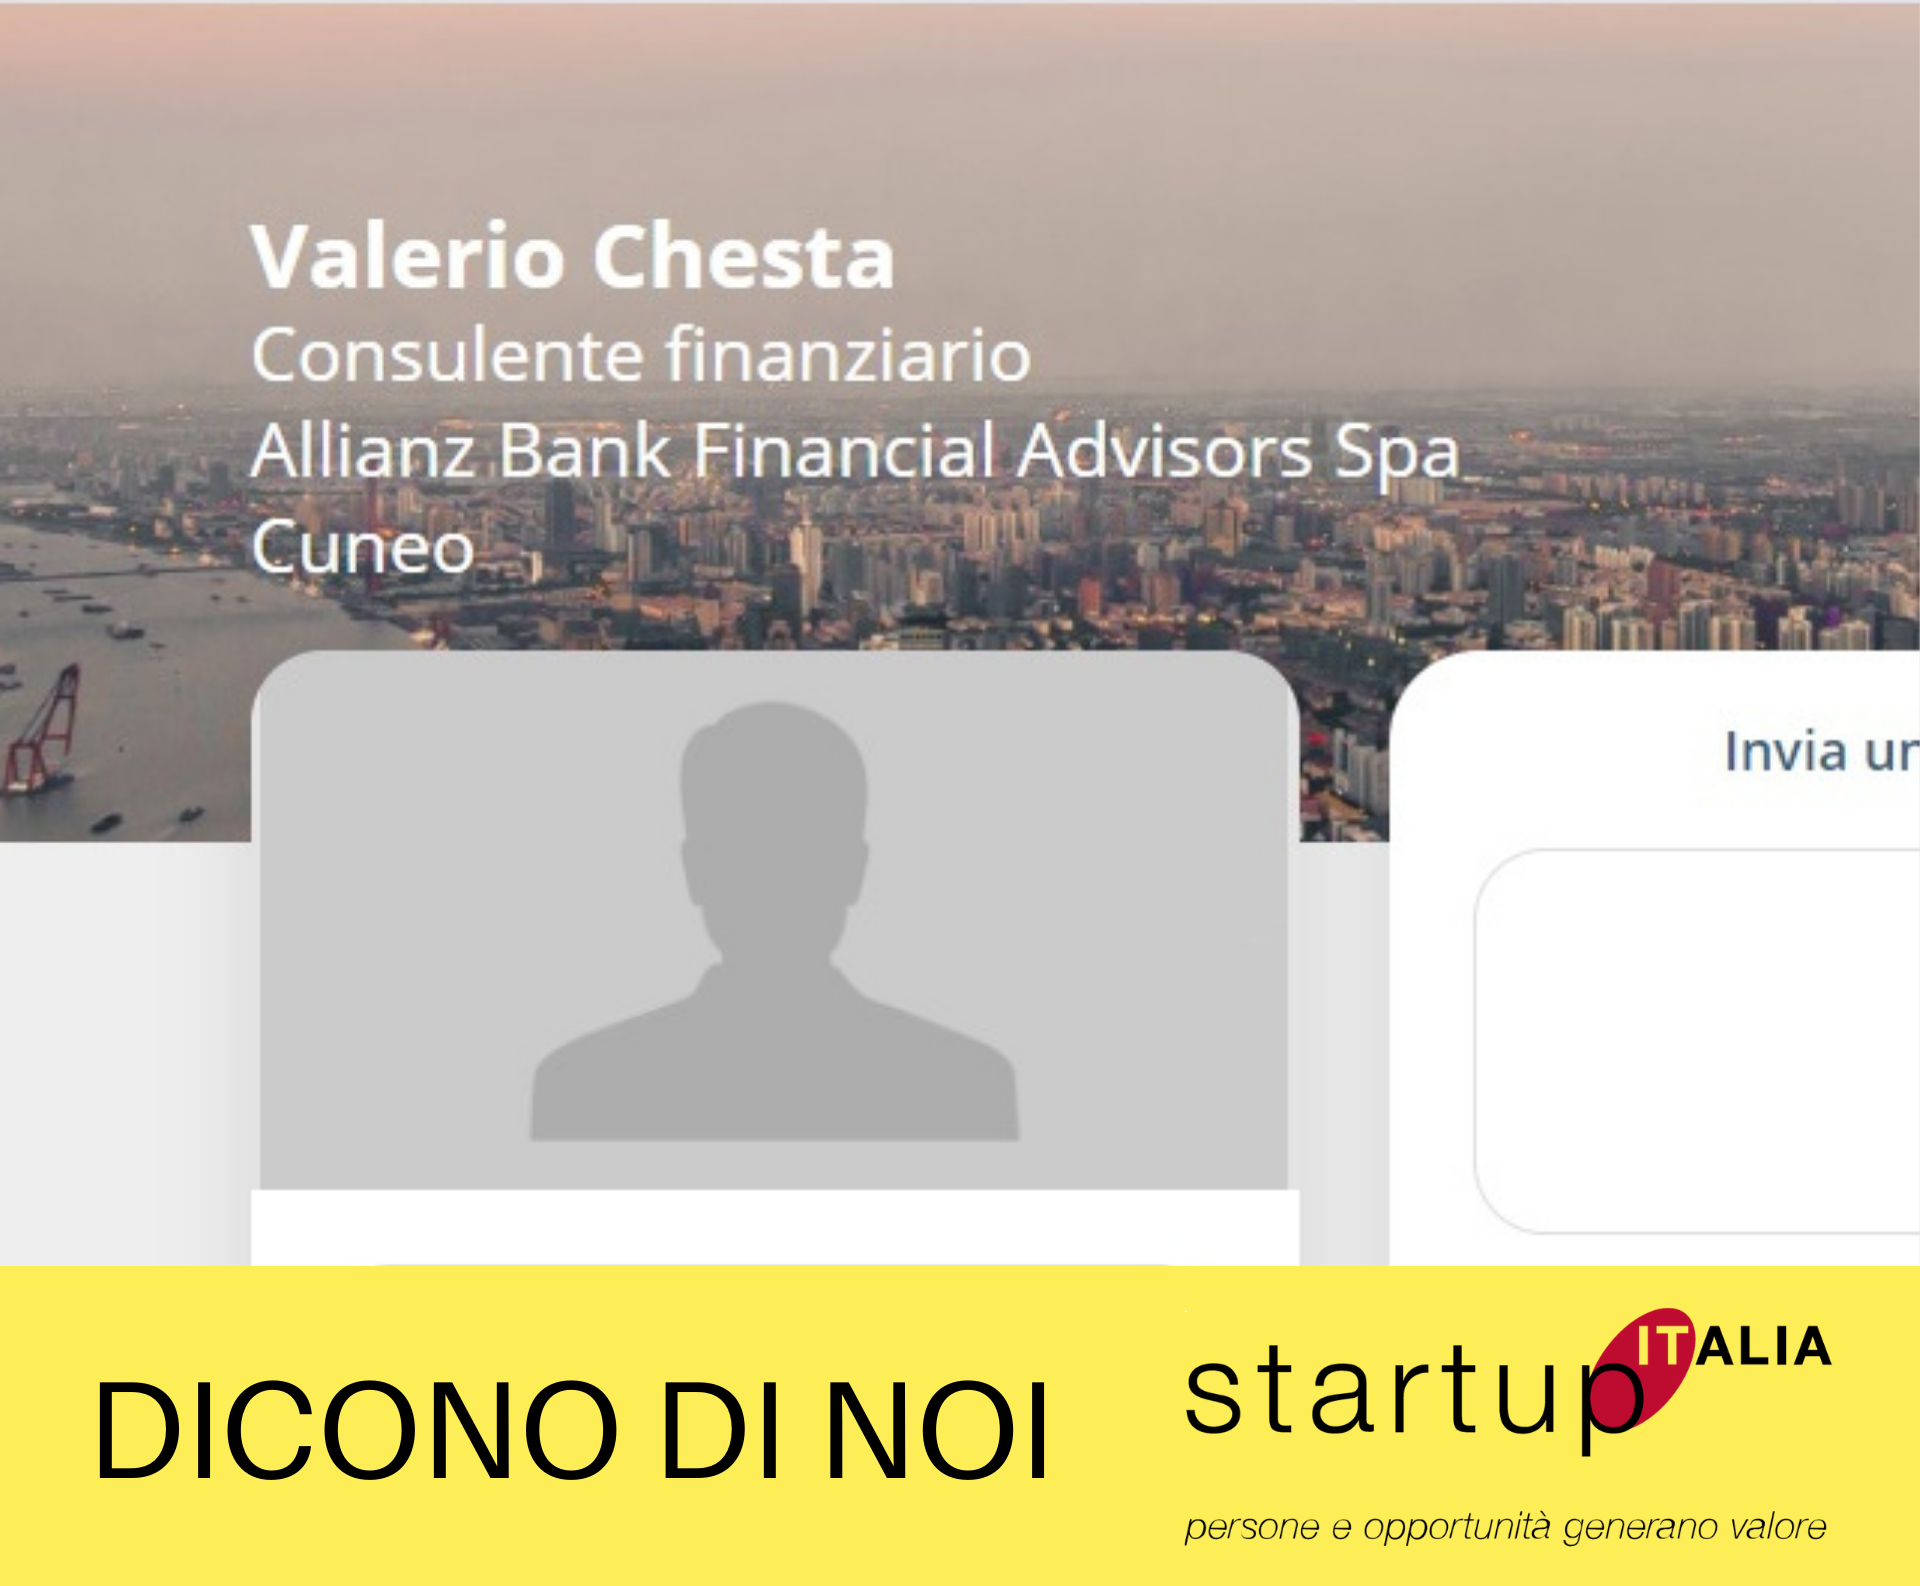 Valerio Chesta – Financial Advisor presso Allianz Bank F.A. spa